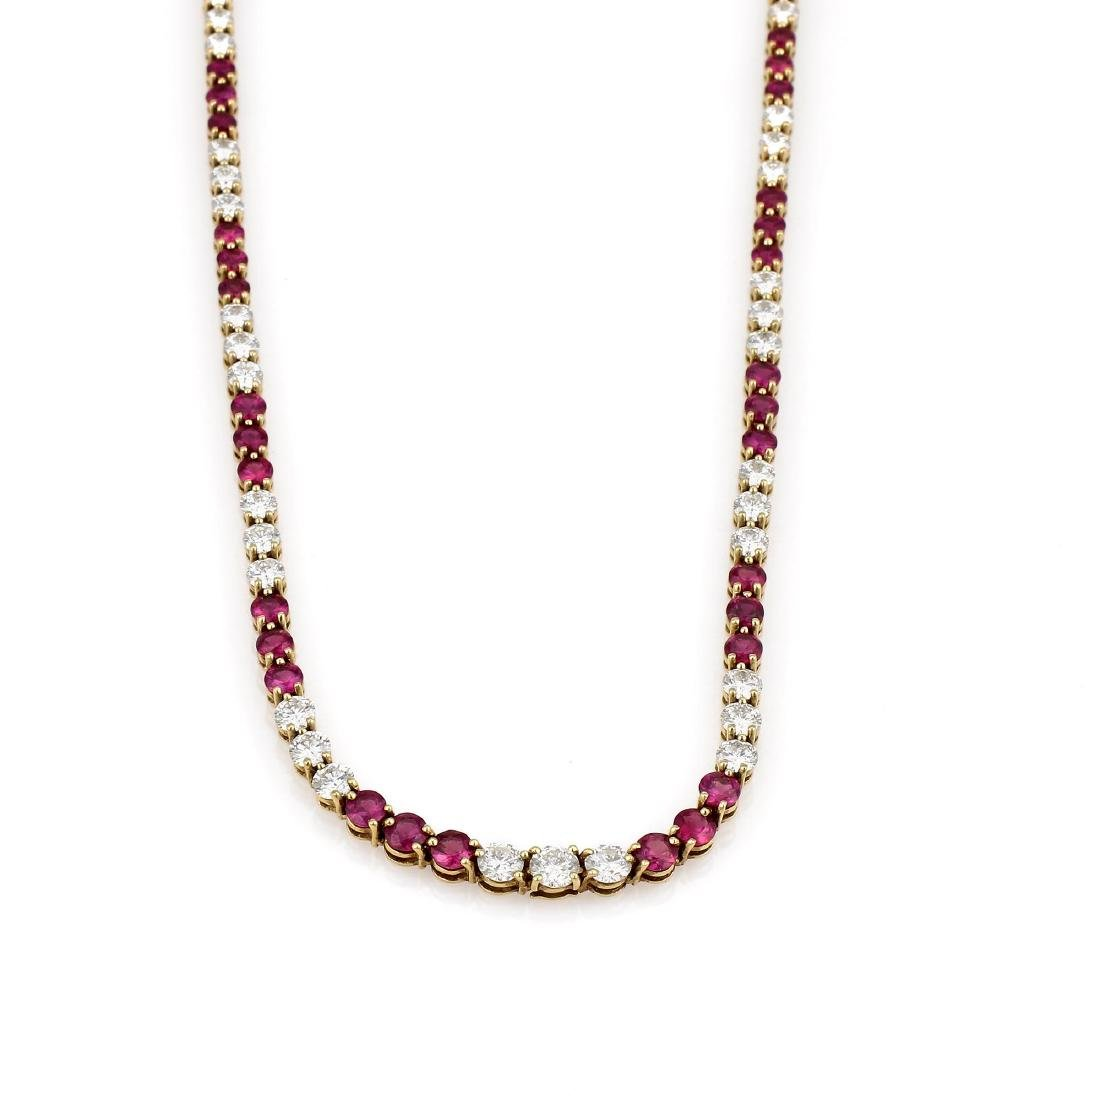 Tiffany & Co. Yellow Gold Diamond Ruby Tennis Necklace